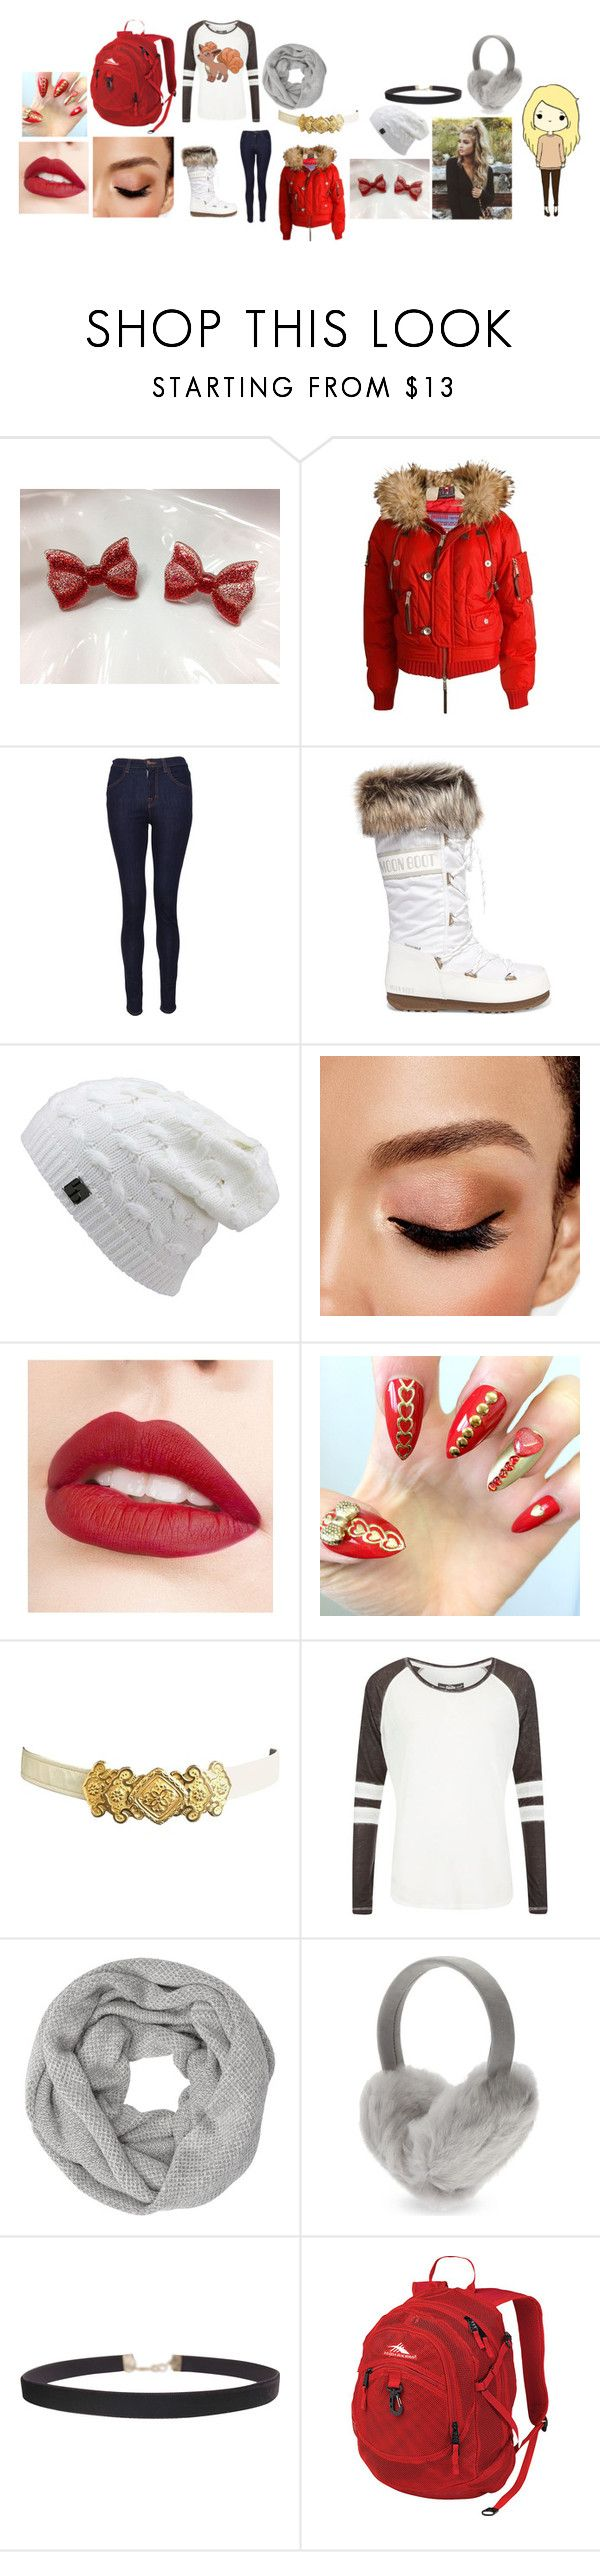 """""""Apple White Winter"""" by phoenix-fox ❤ liked on Polyvore featuring Dsquared2, J Brand, Moon Boot, Avon, Jouer, Superdry, John Lewis, Karl Donoghue, Humble Chic and High Sierra"""